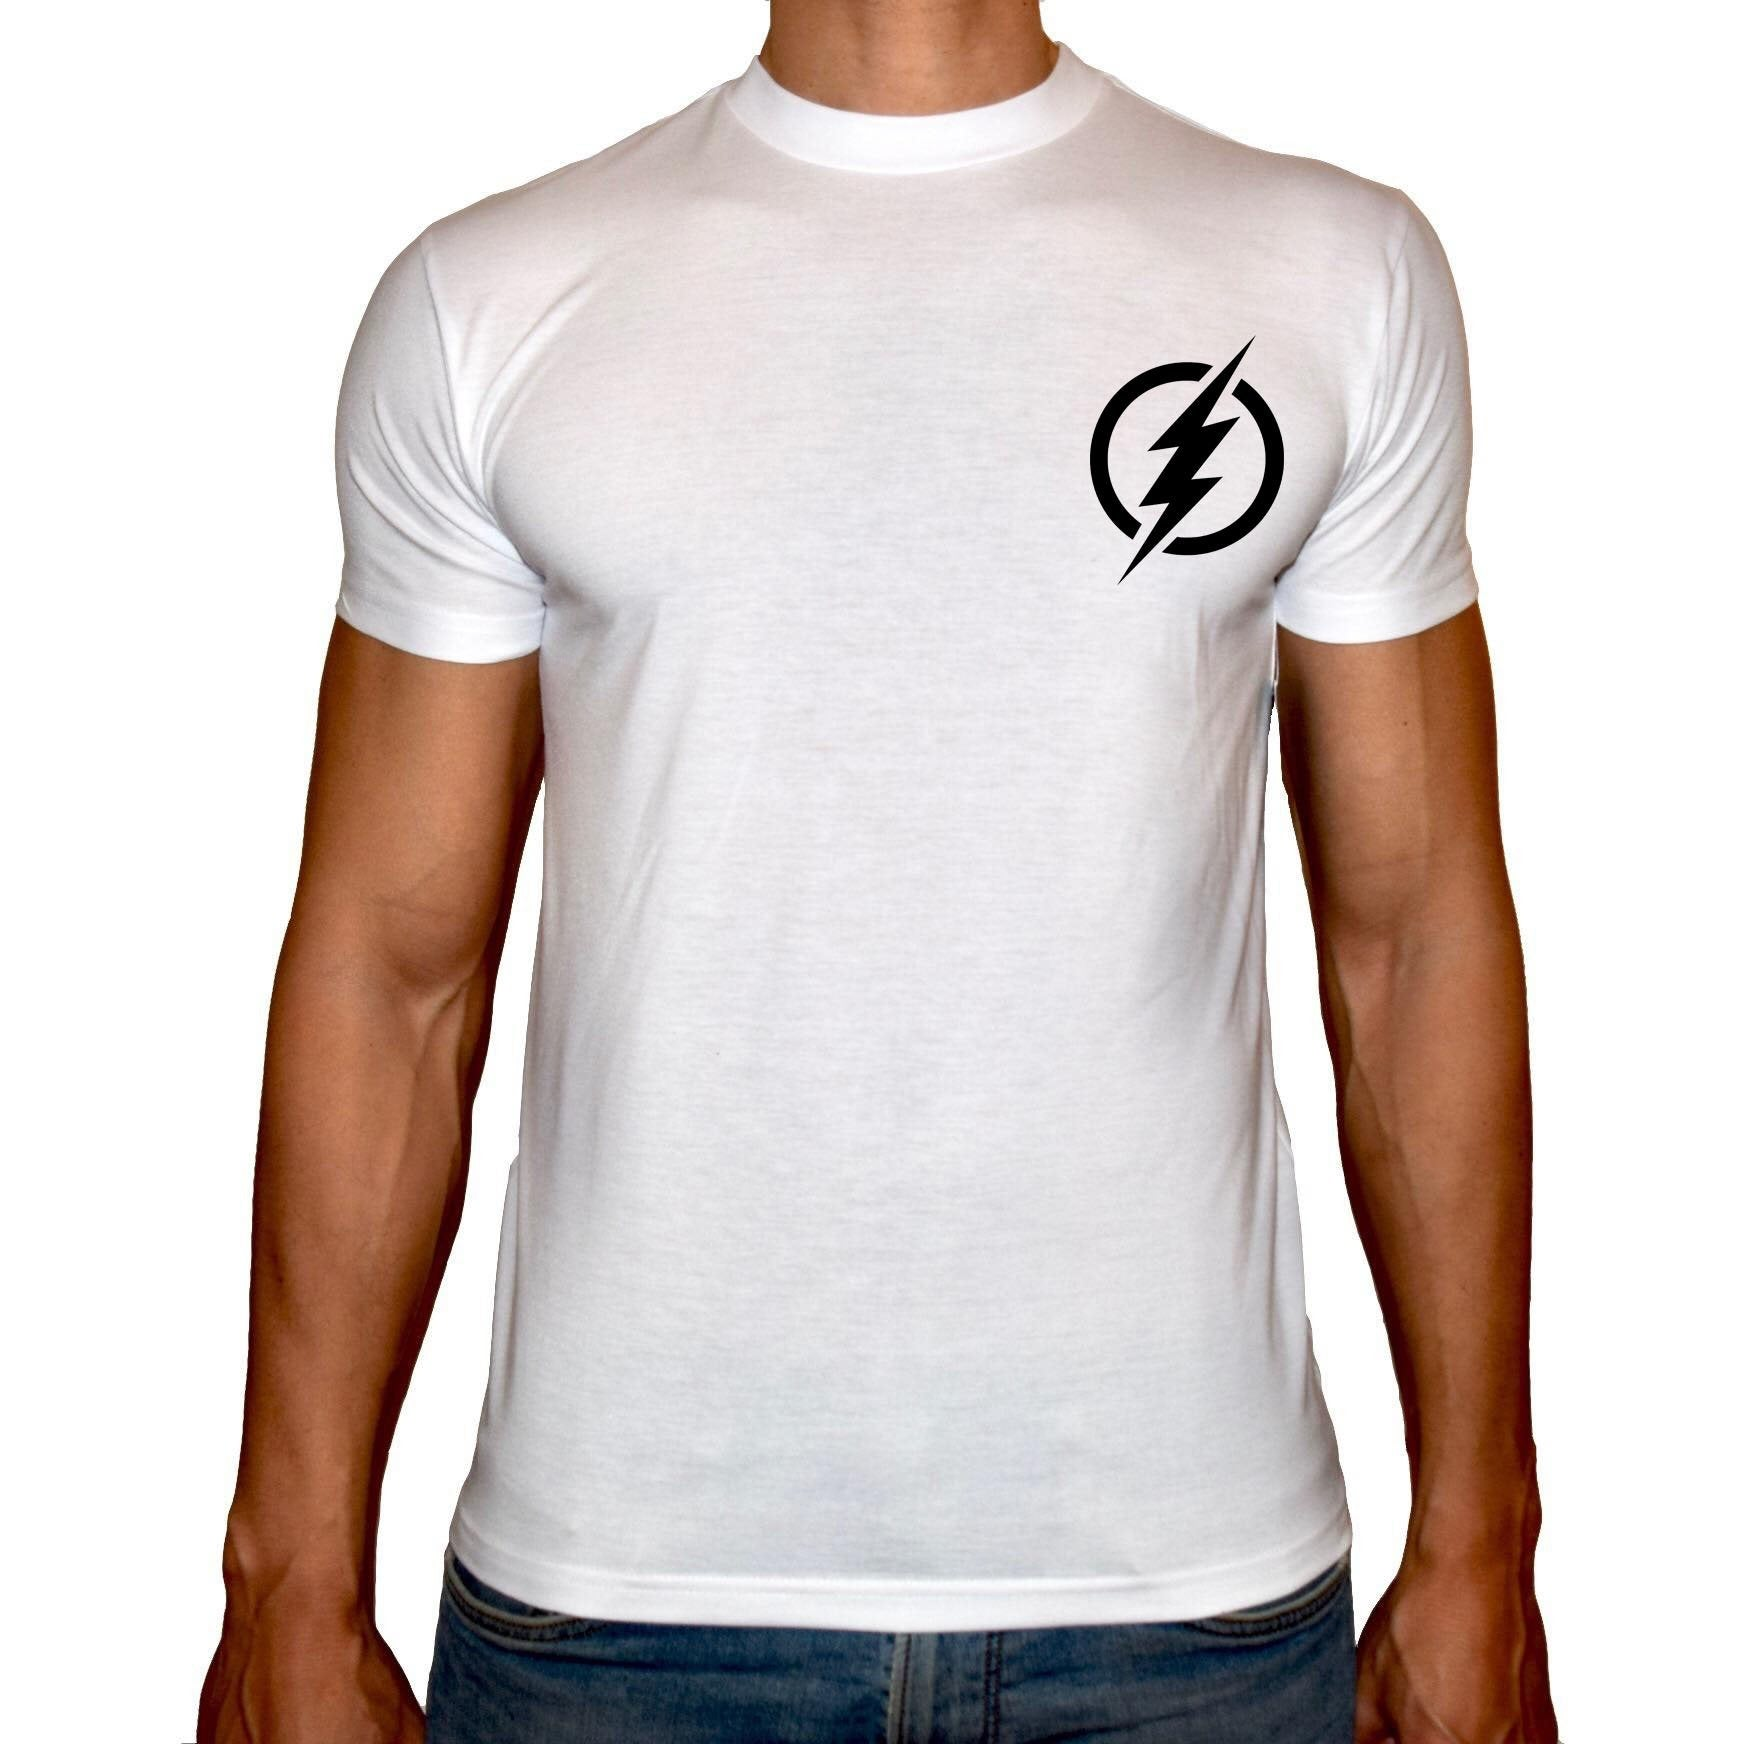 Phoenix WHITE Round Neck Printed T-Shirt Men (Flash)